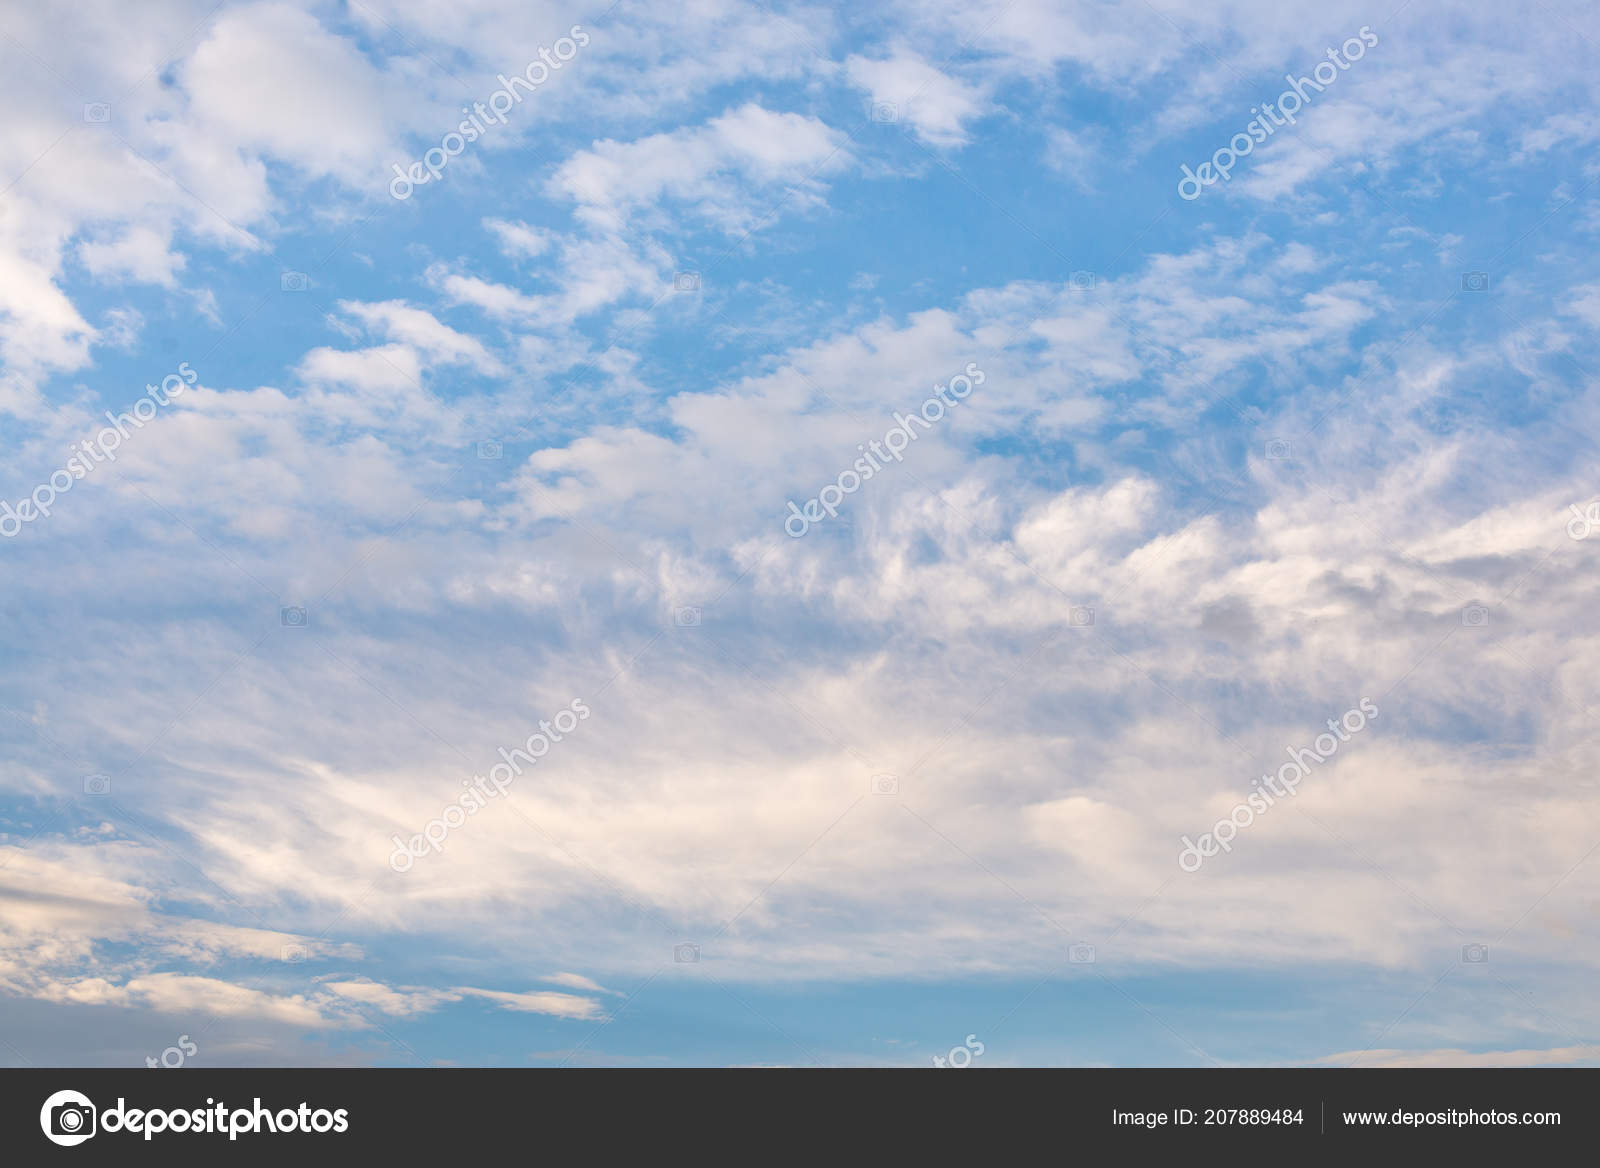 blue sky clouds background stock photo barilos 207889484